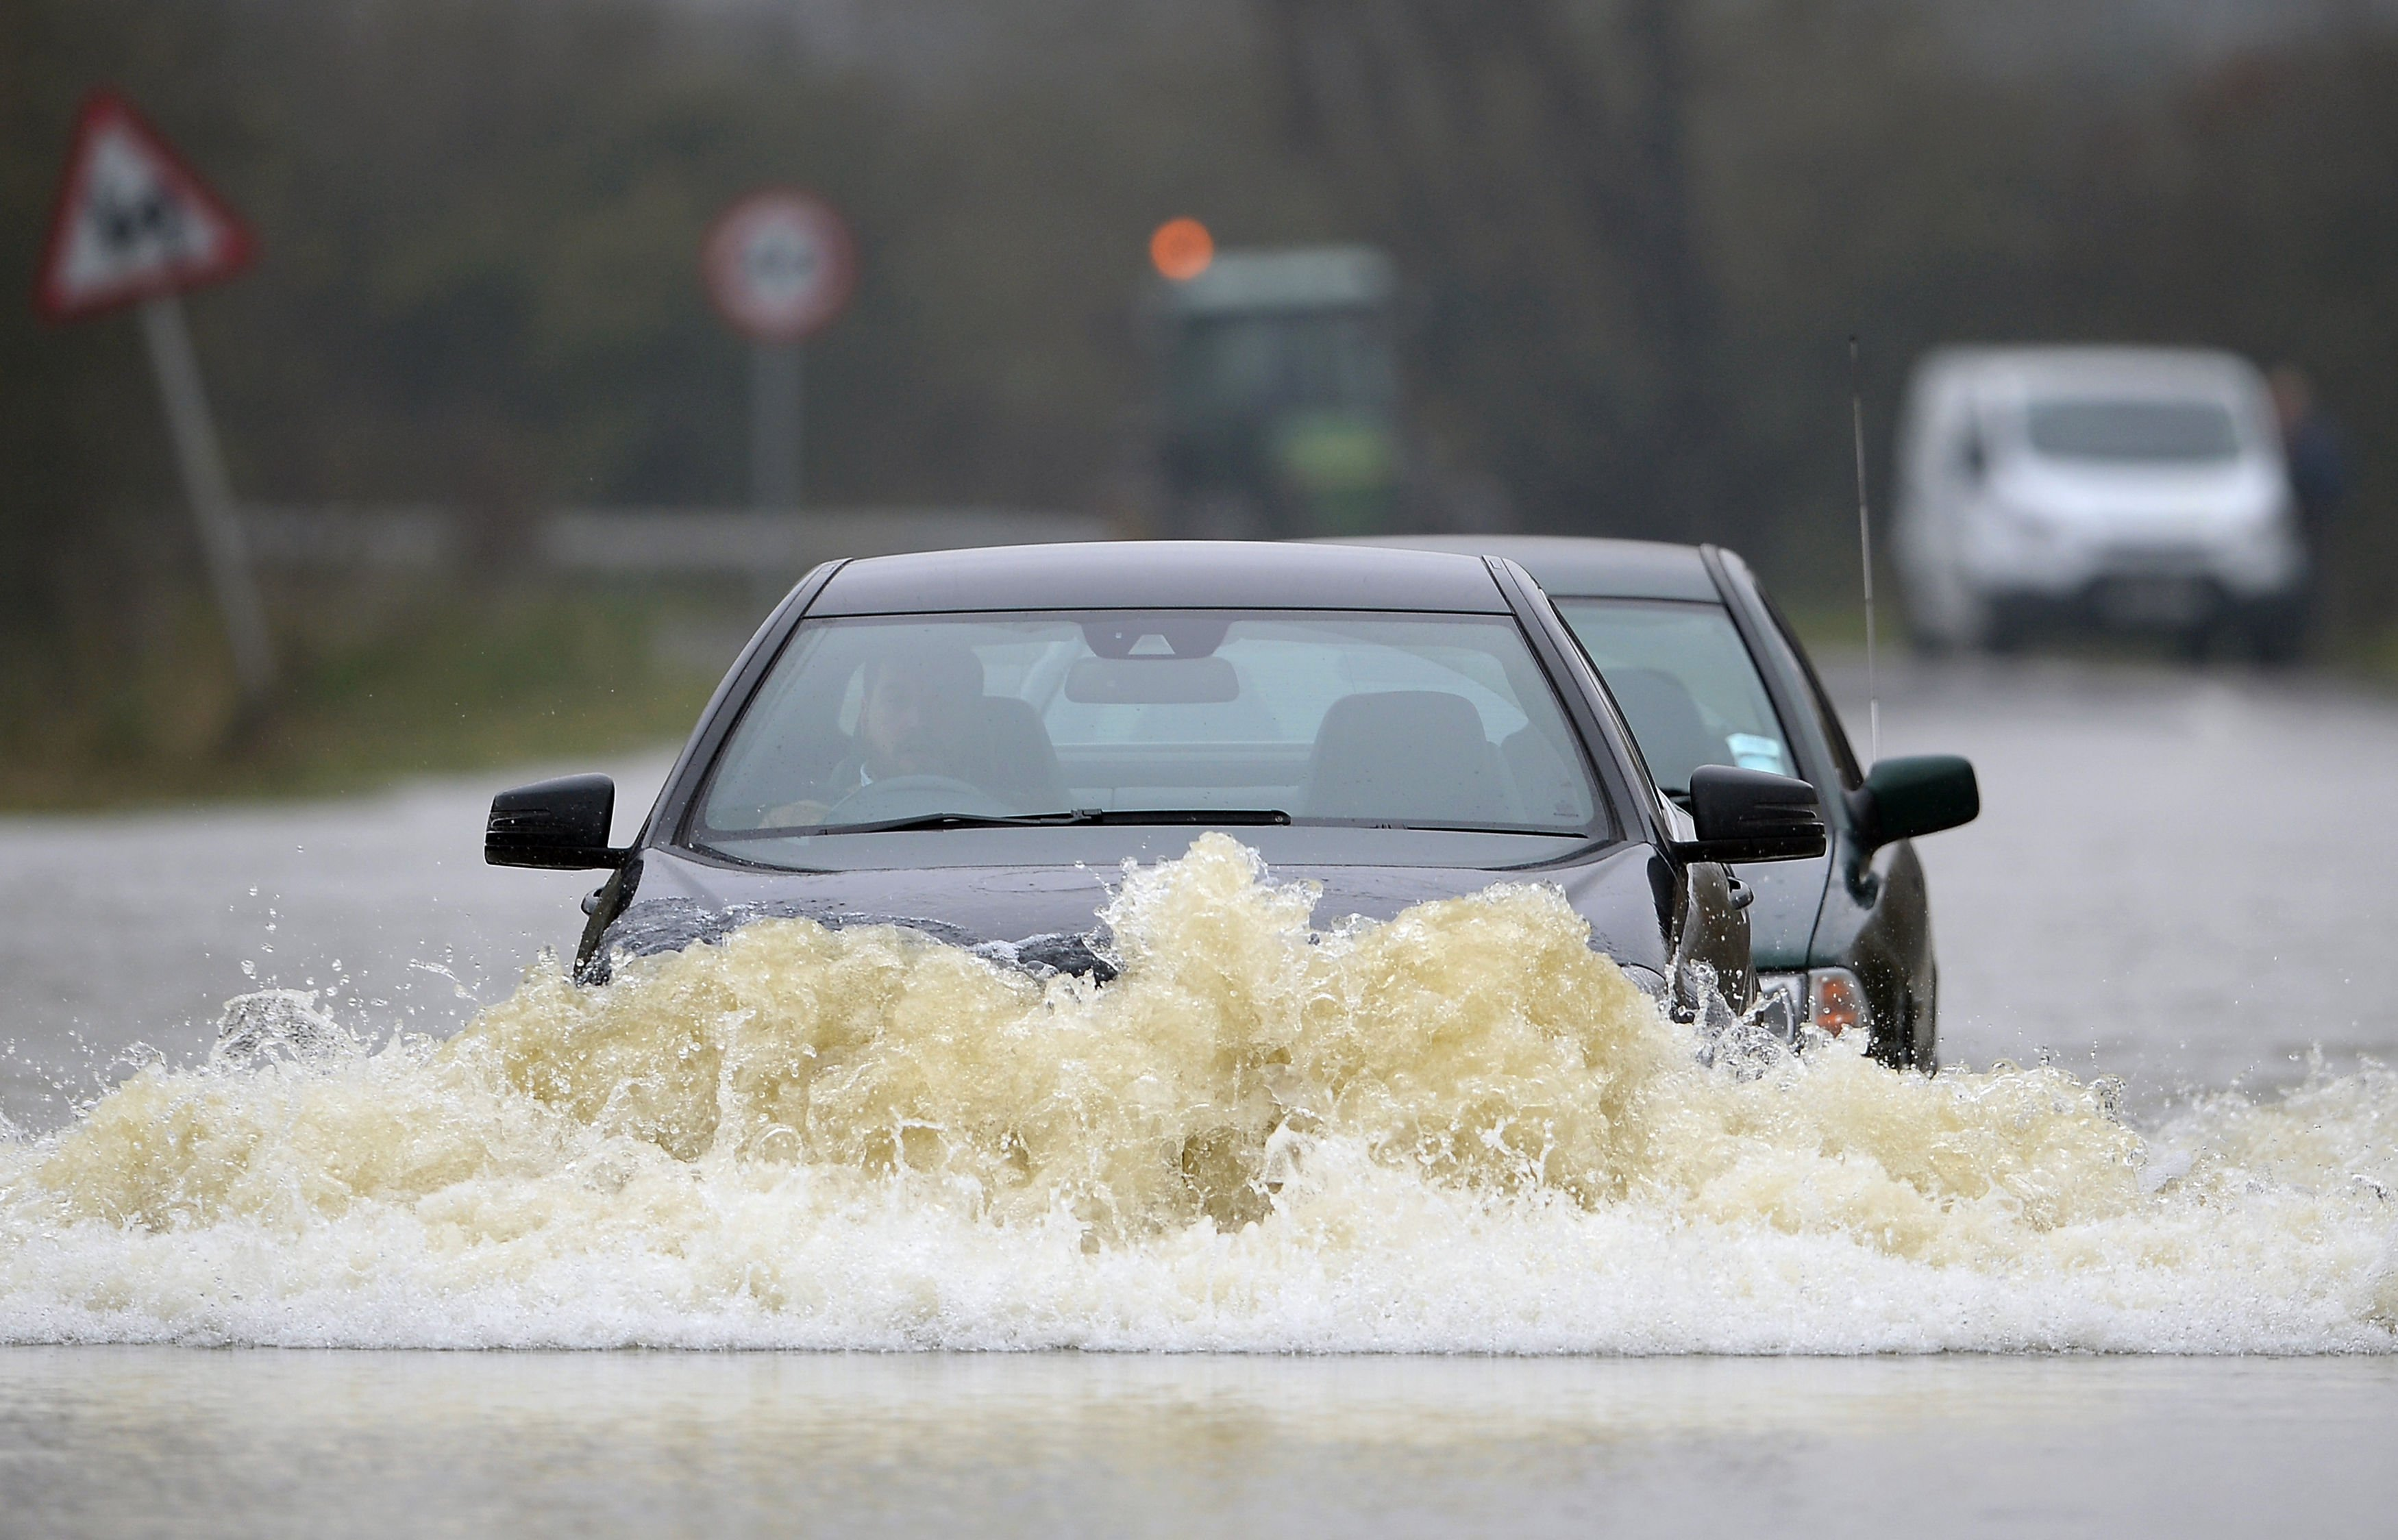 Driving through flood water can be life-threatening – just 30cm of flowing water is enough to float your car